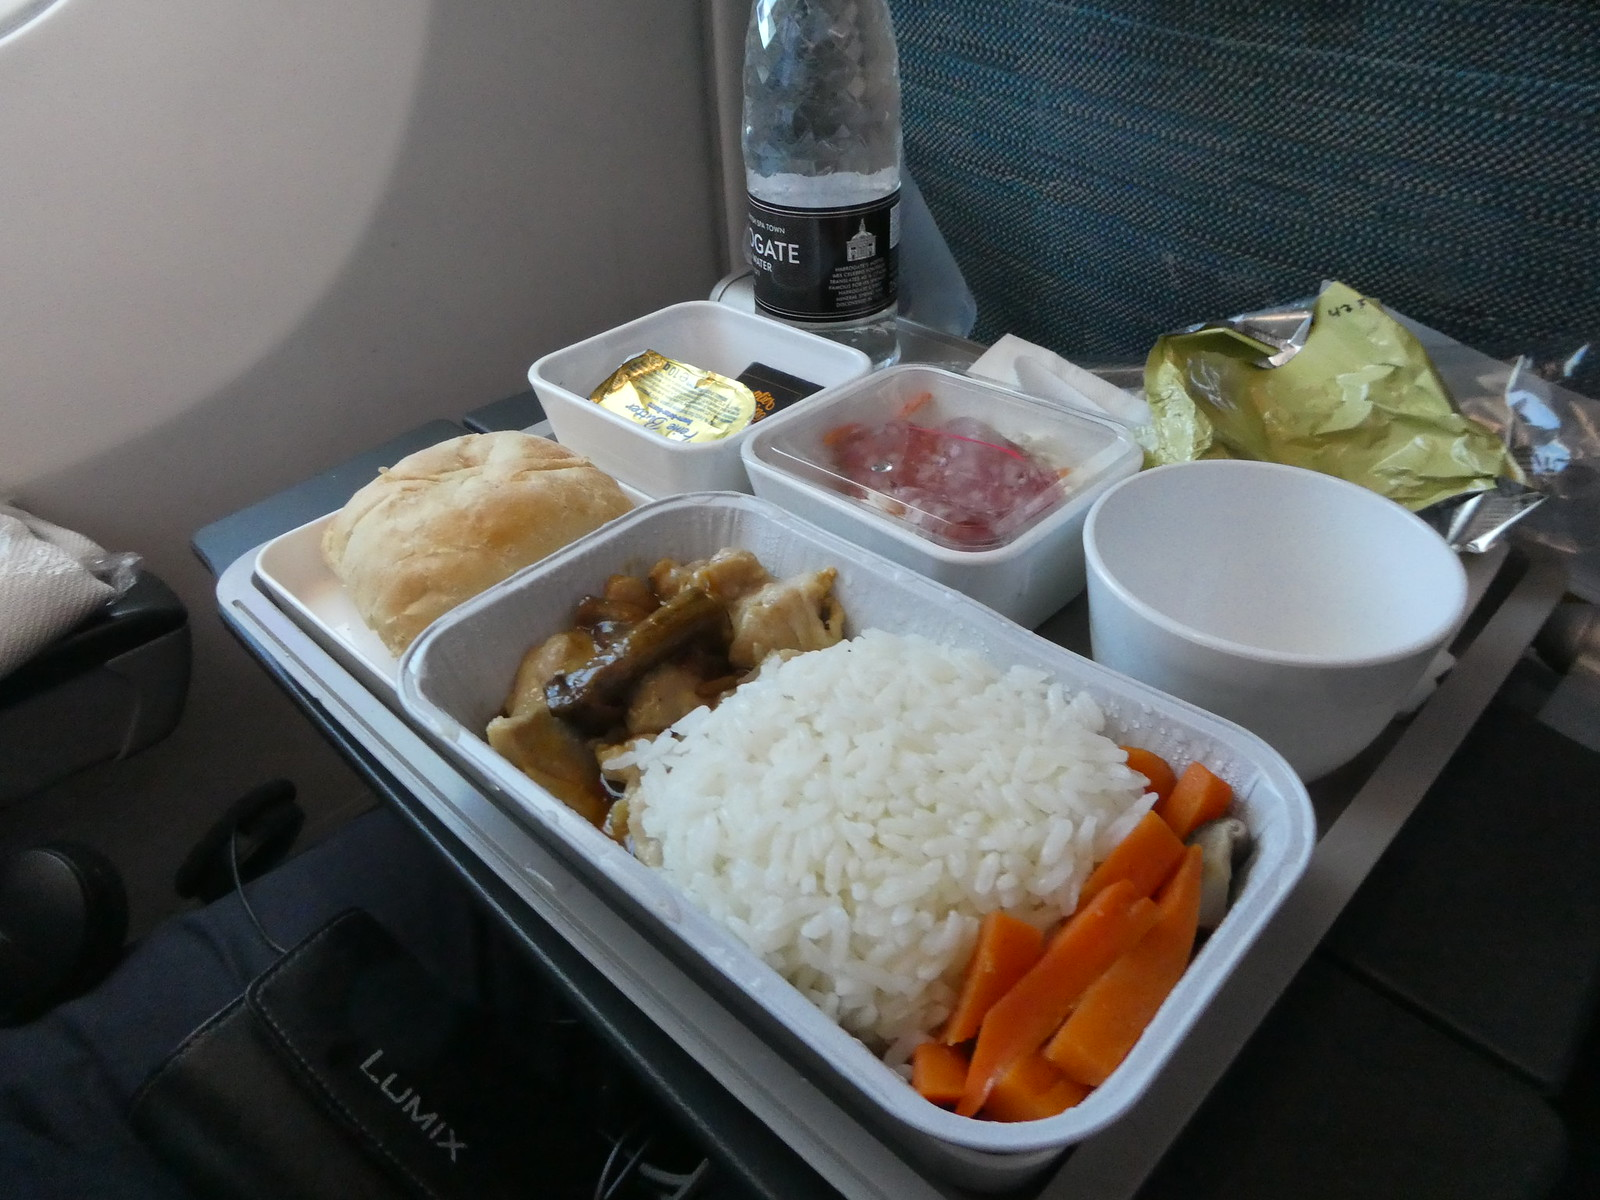 Lunch served on board our flight from Manchester to Hong Kong